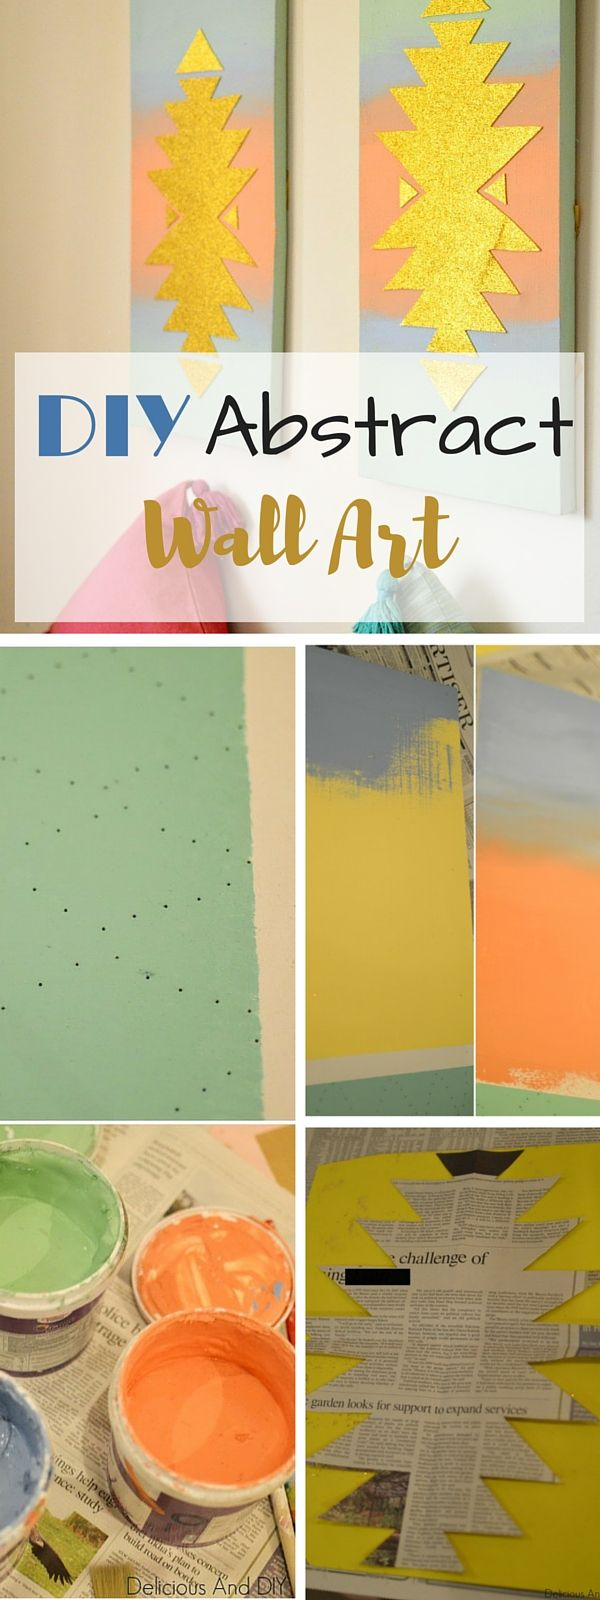 15 Home Decor Splurges That Are a Lot Cheaper to DIY Than Buy | Wall ...